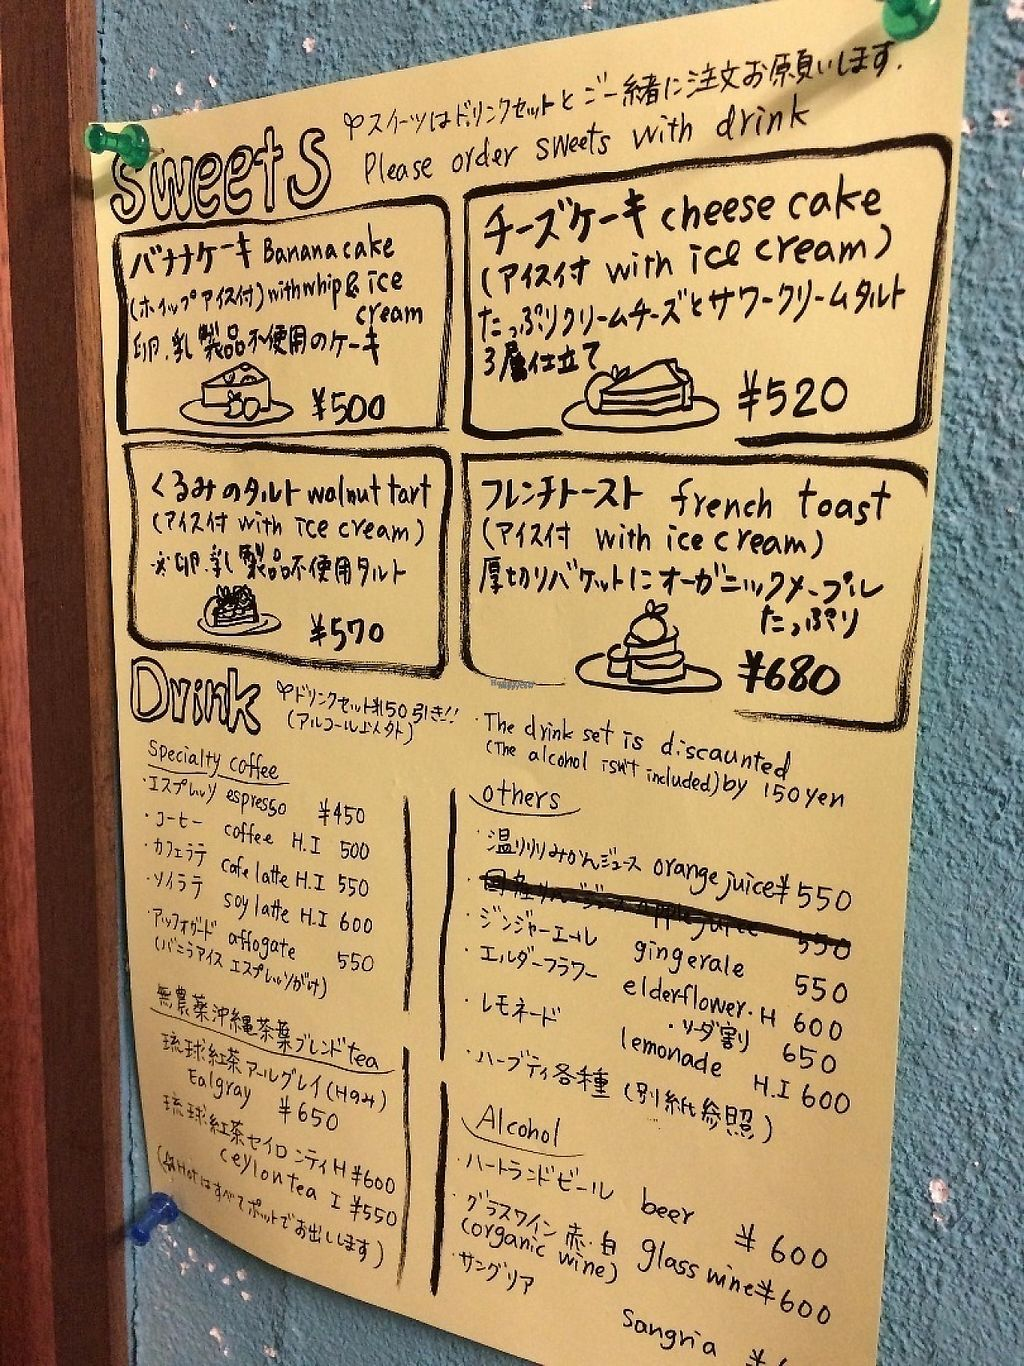 """Photo of Yidaki Cafe  by <a href=""""/members/profile/Taiki"""">Taiki</a> <br/>Menu <br/> March 3, 2017  - <a href='/contact/abuse/image/85605/232058'>Report</a>"""